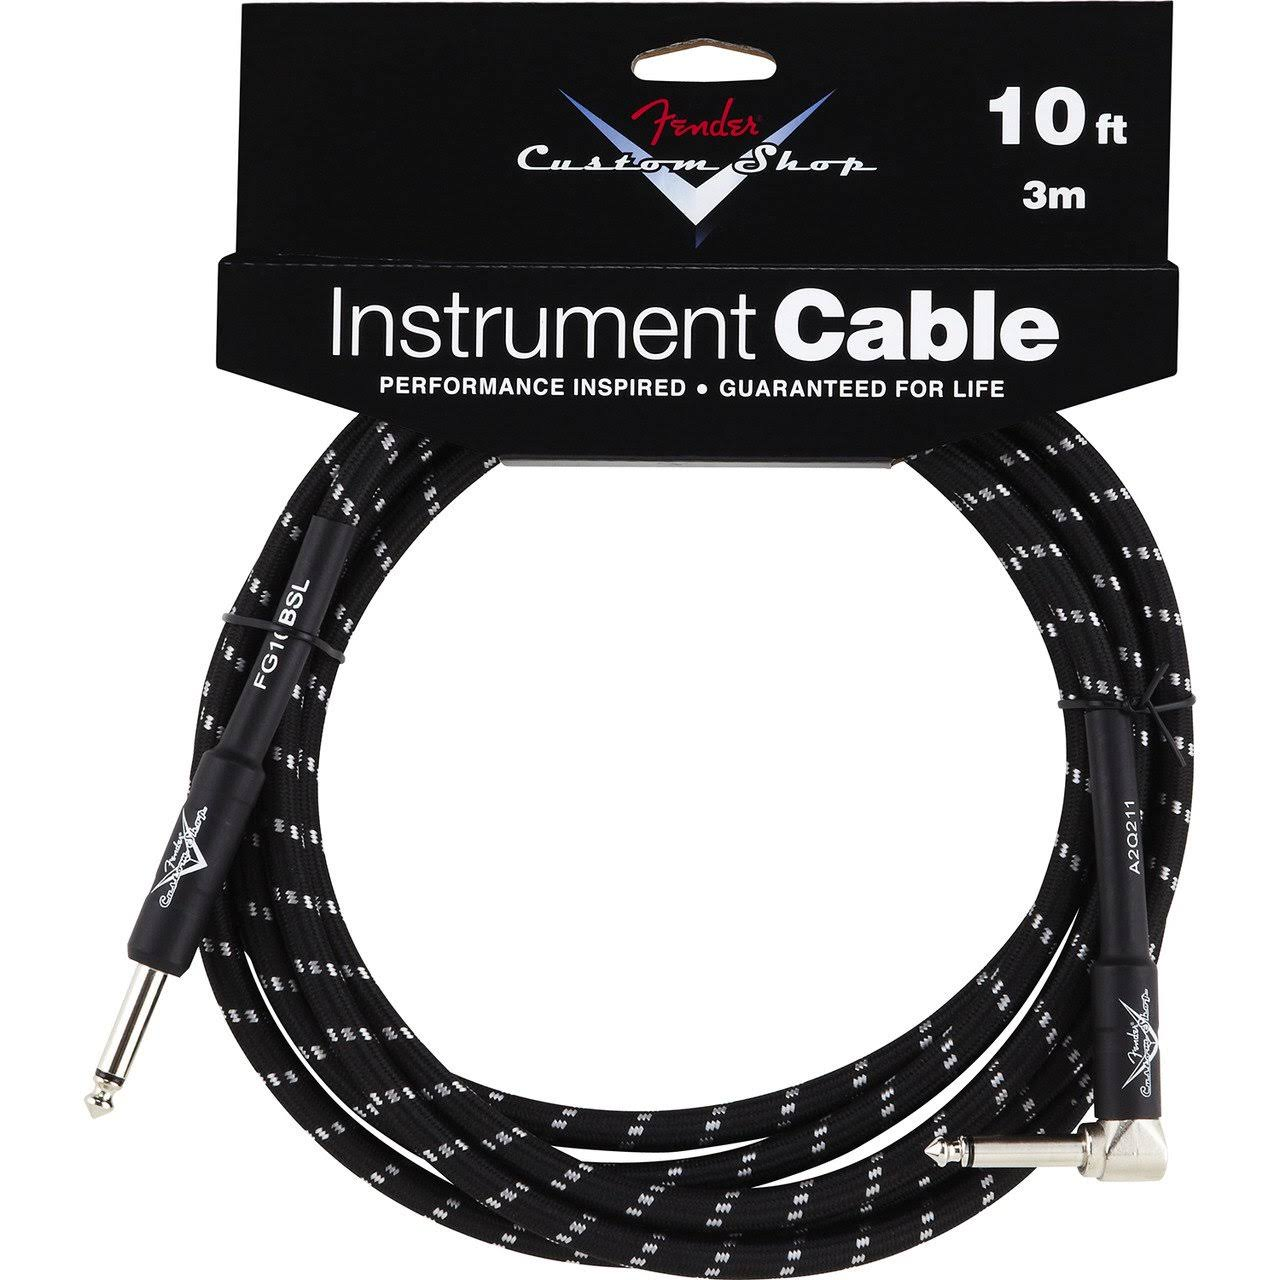 Fender Custom Shop Instrument Cable - Black, 3m